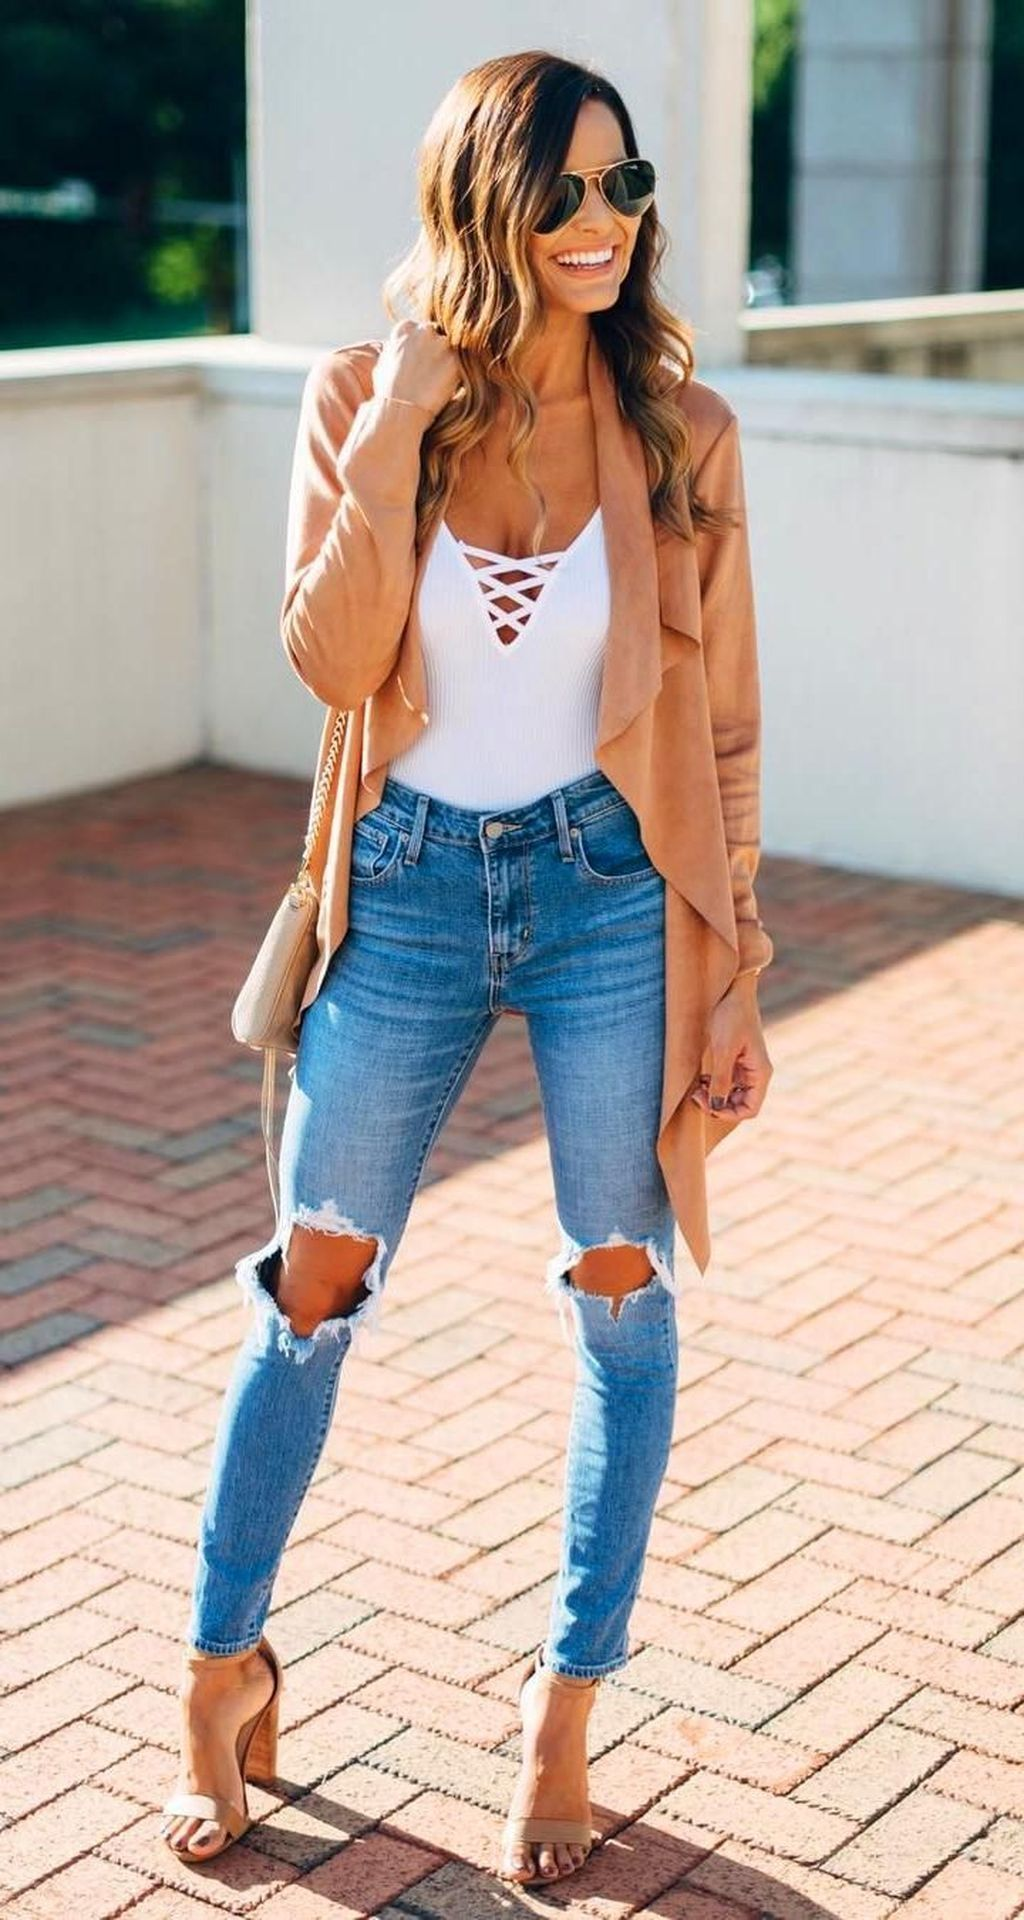 Chic and Stylish Fall Looks From The Fancy Pants Report